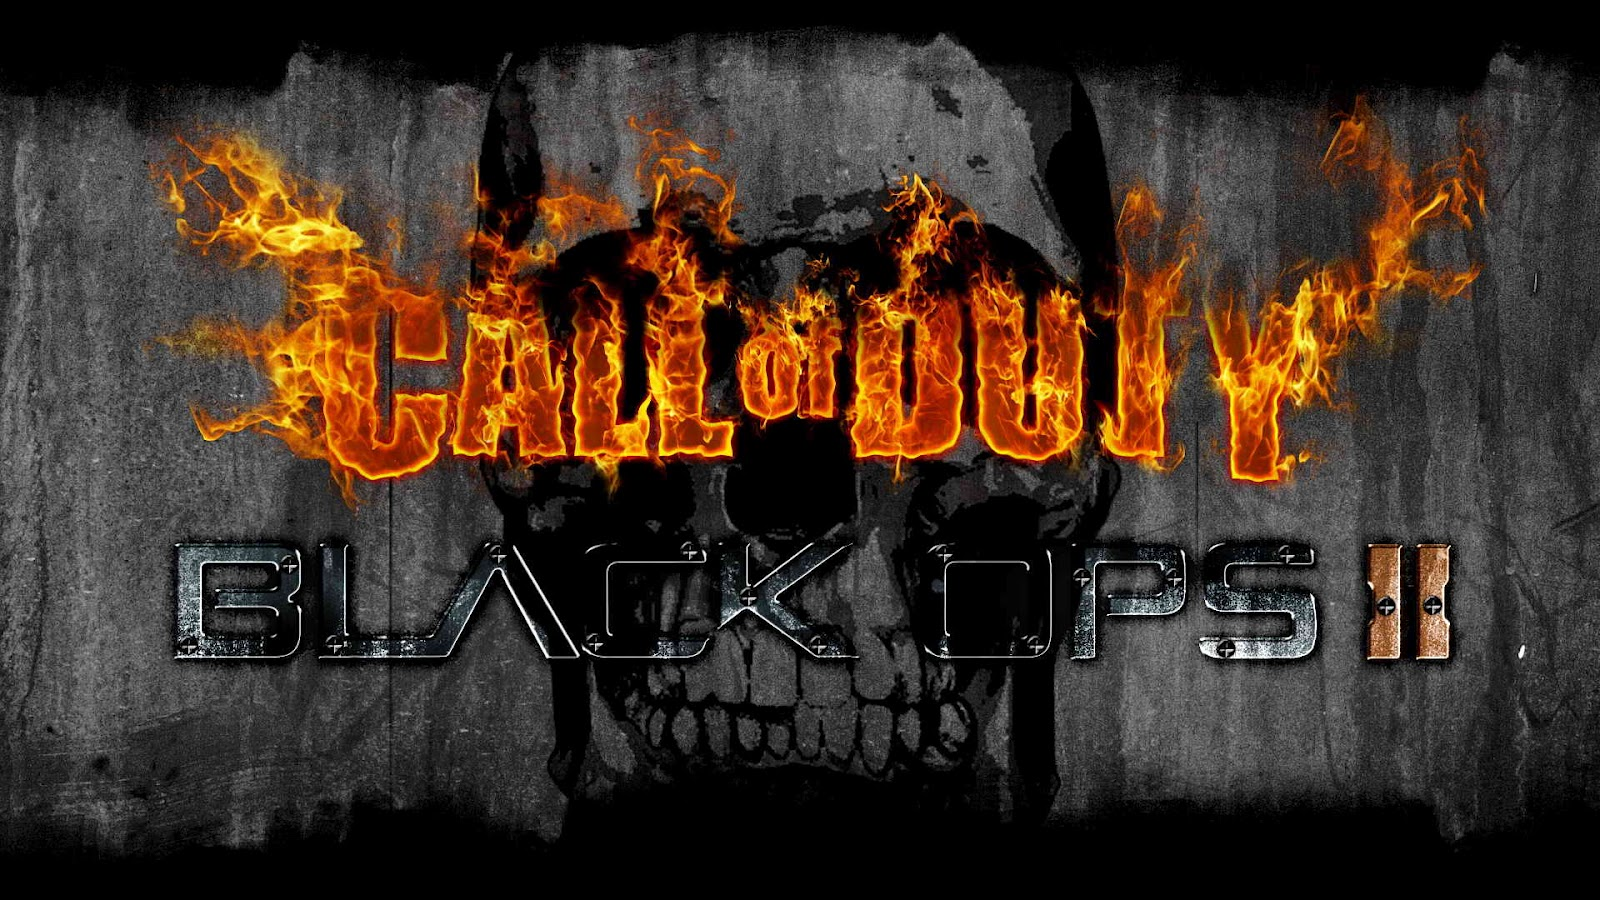 ... Call Of Duty Black Ops 2 Wallpaper ...